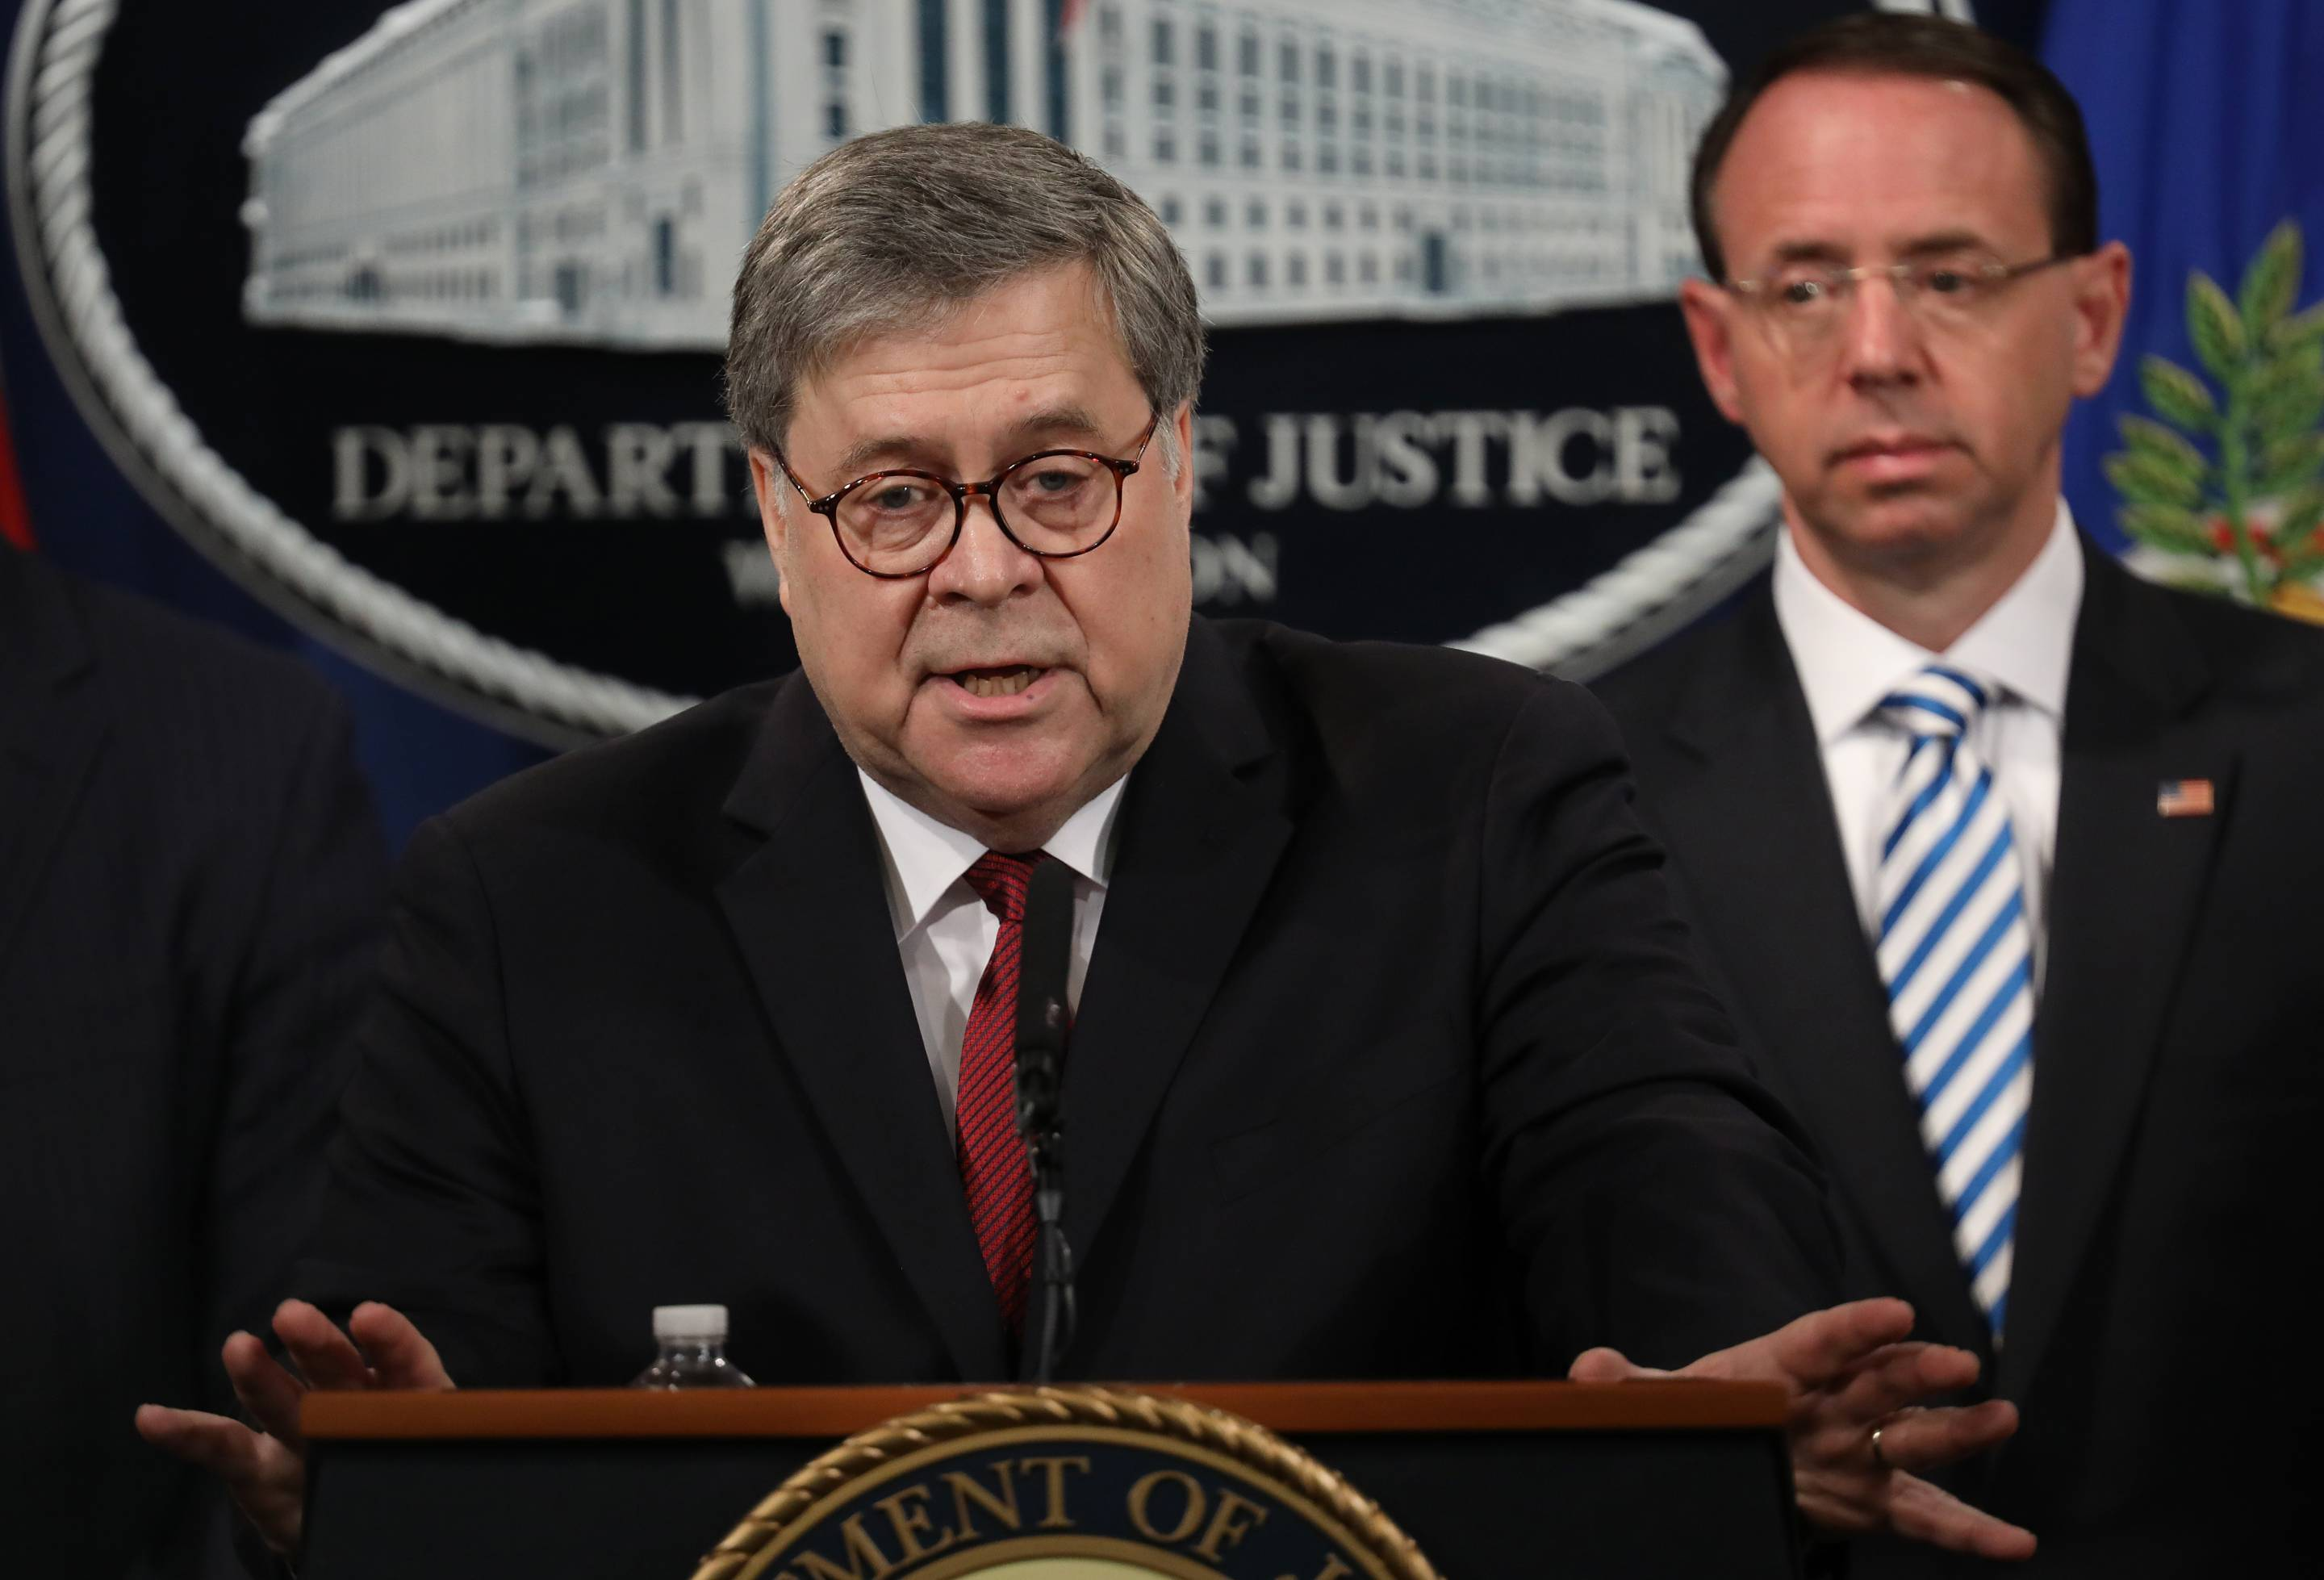 Attorney General William Barr Holds Press Conference To Discuss Release Of Mueller Report